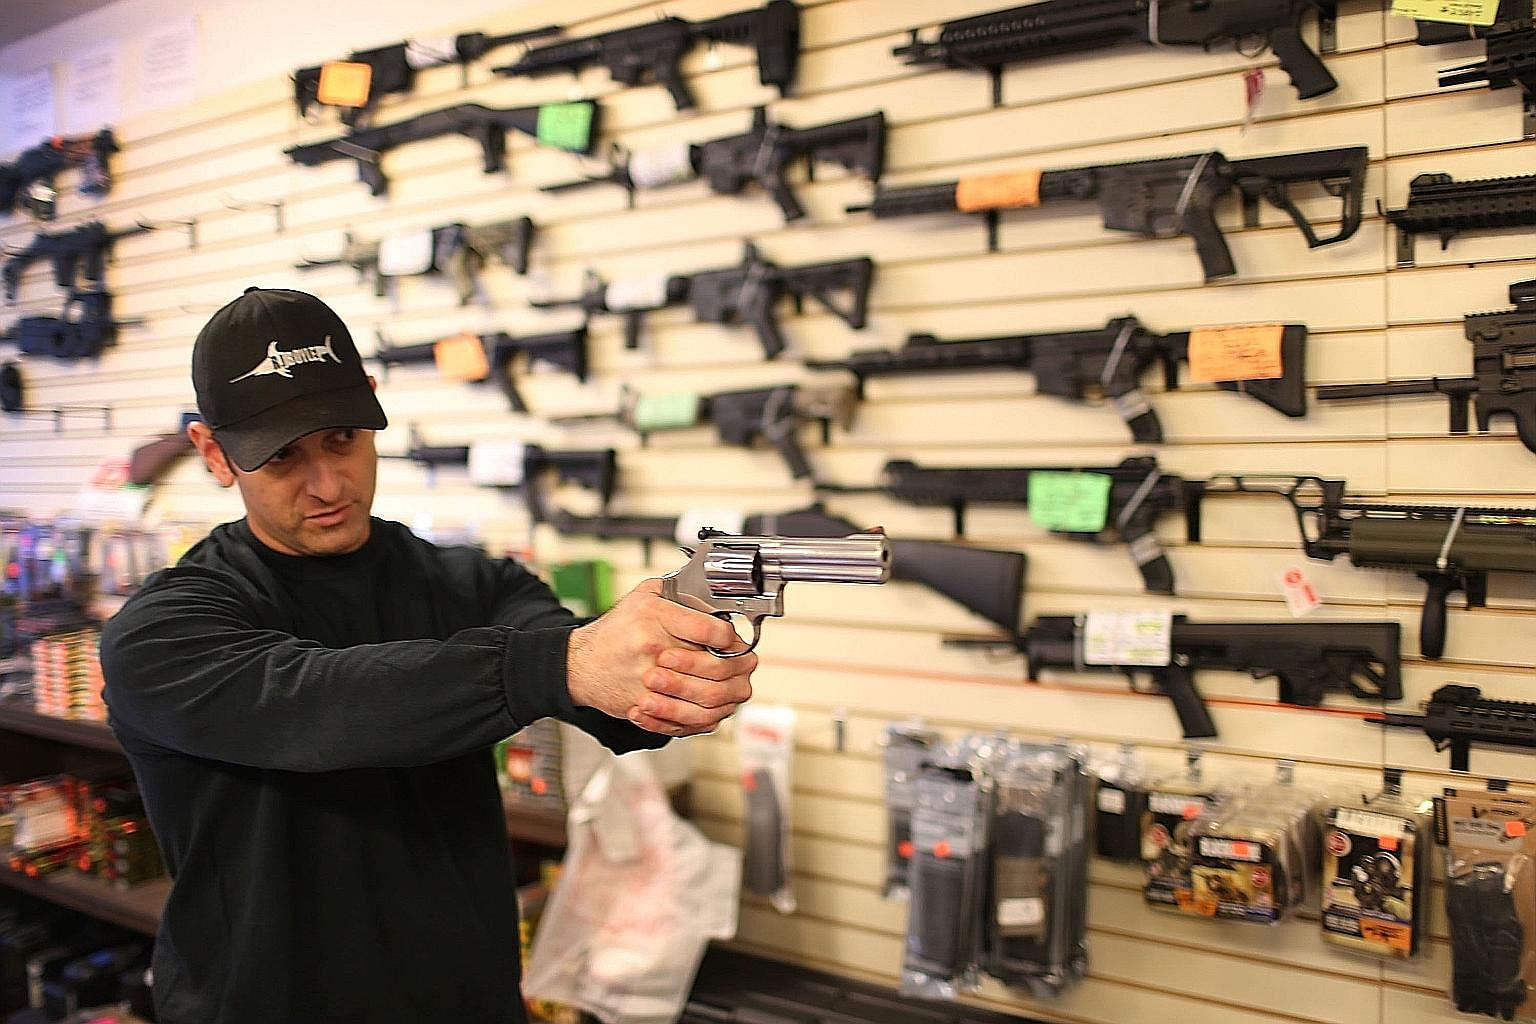 An employee demonstrating the use of a handgun at a firearms store in the US. On the question of whether more guns create more safety or more risk, the evidence is clear that most gun owners use firearms responsibly, but, with more guns, there are mo